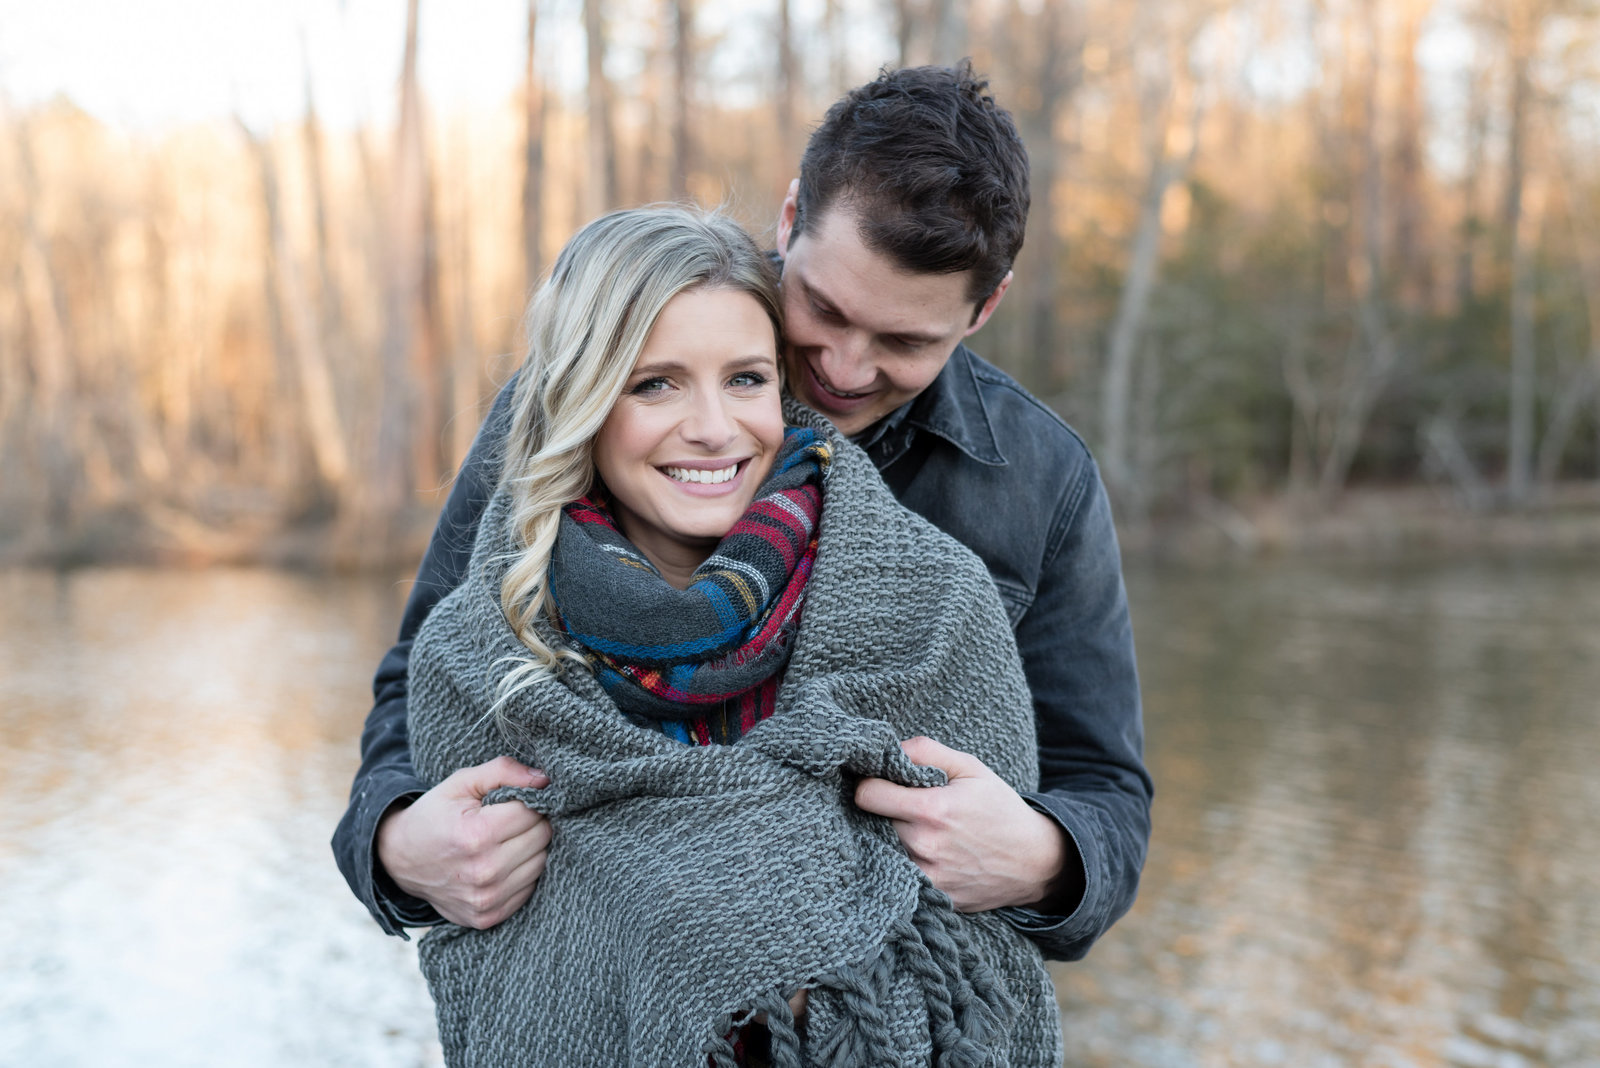 Byra-and-Nick-Pocahontas-State-Park-Engagement-Photos-Melissa-Desjardins-Photography-4